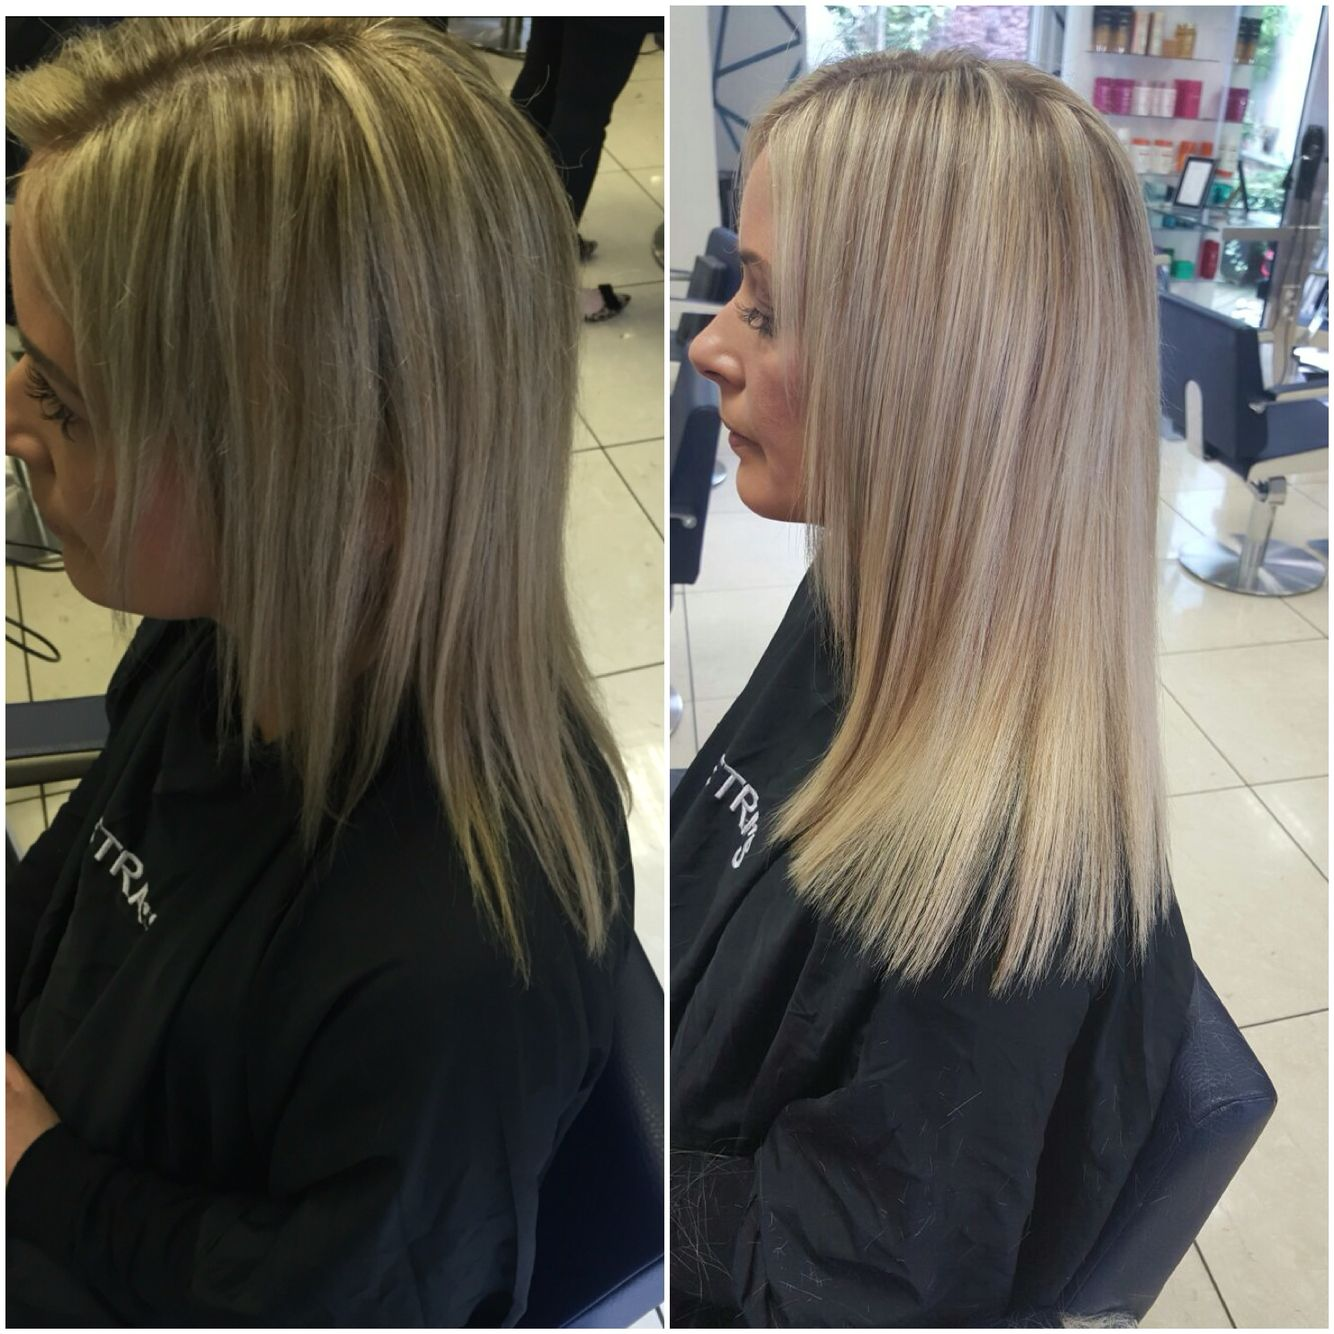 Great Length Extensions 12 125 Bonds Applies By Christina At